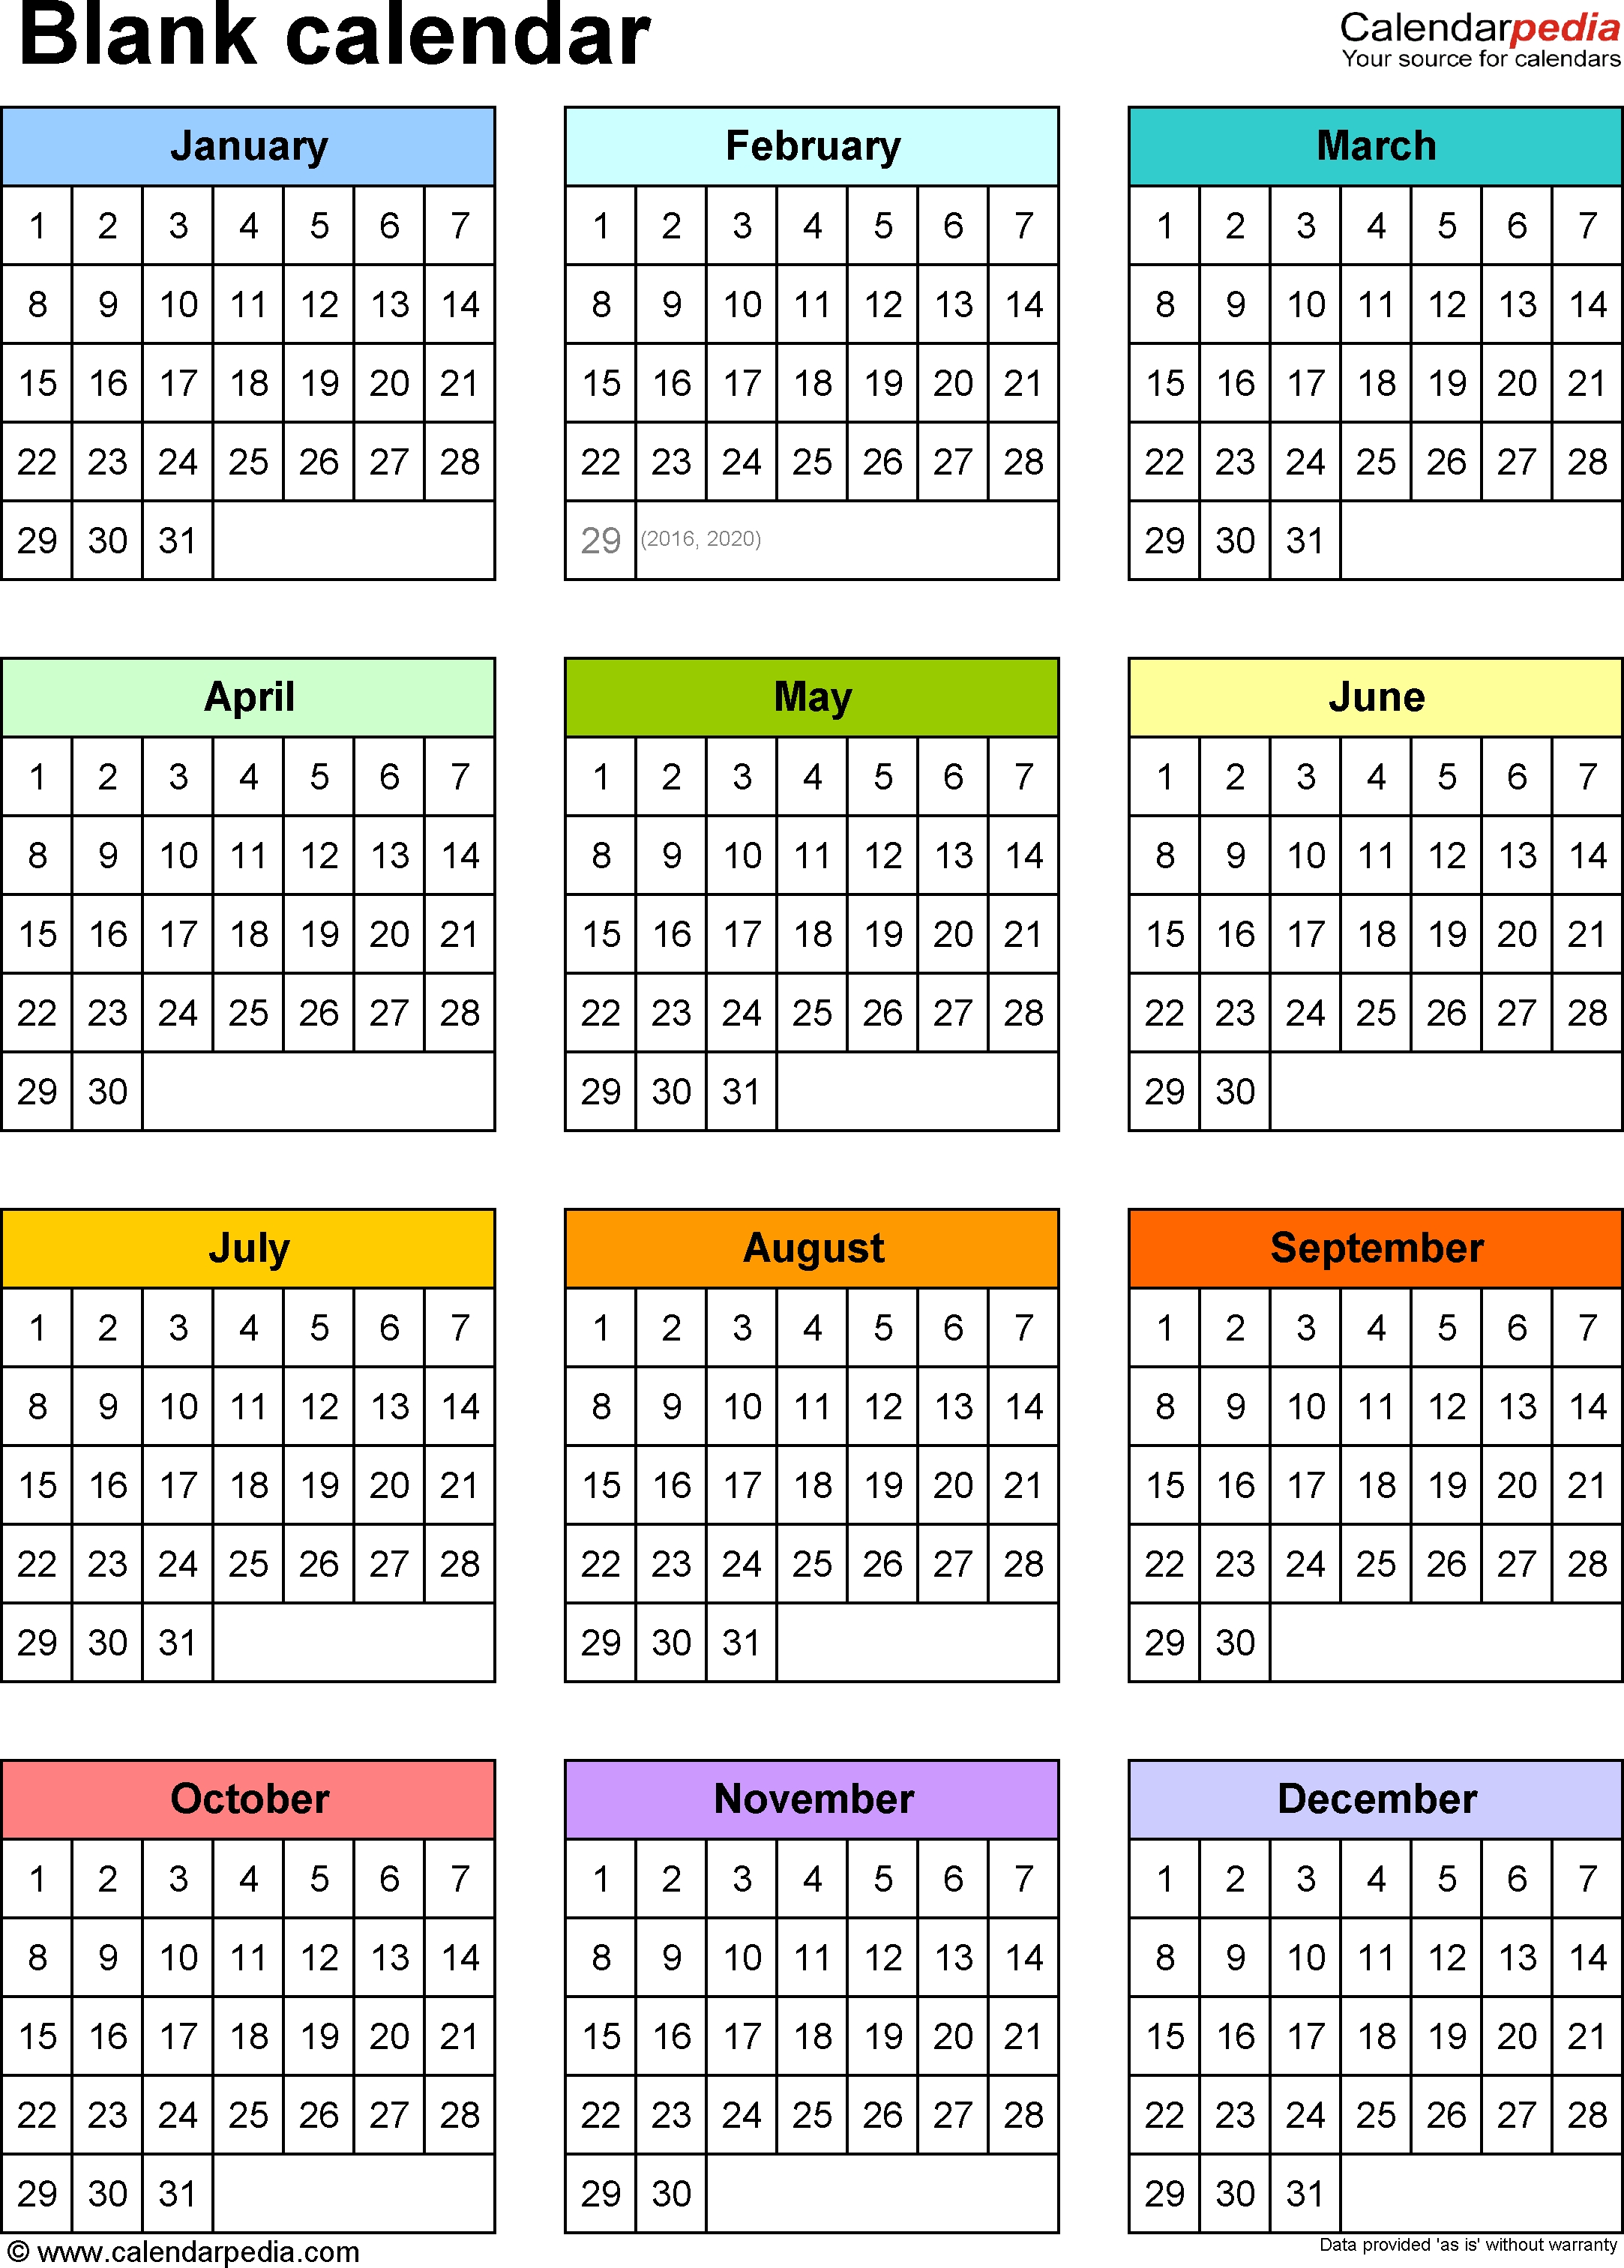 Blank Calendar - 9 Free Printable Microsoft Word Templates intended for One Page Annual Calendar Printable